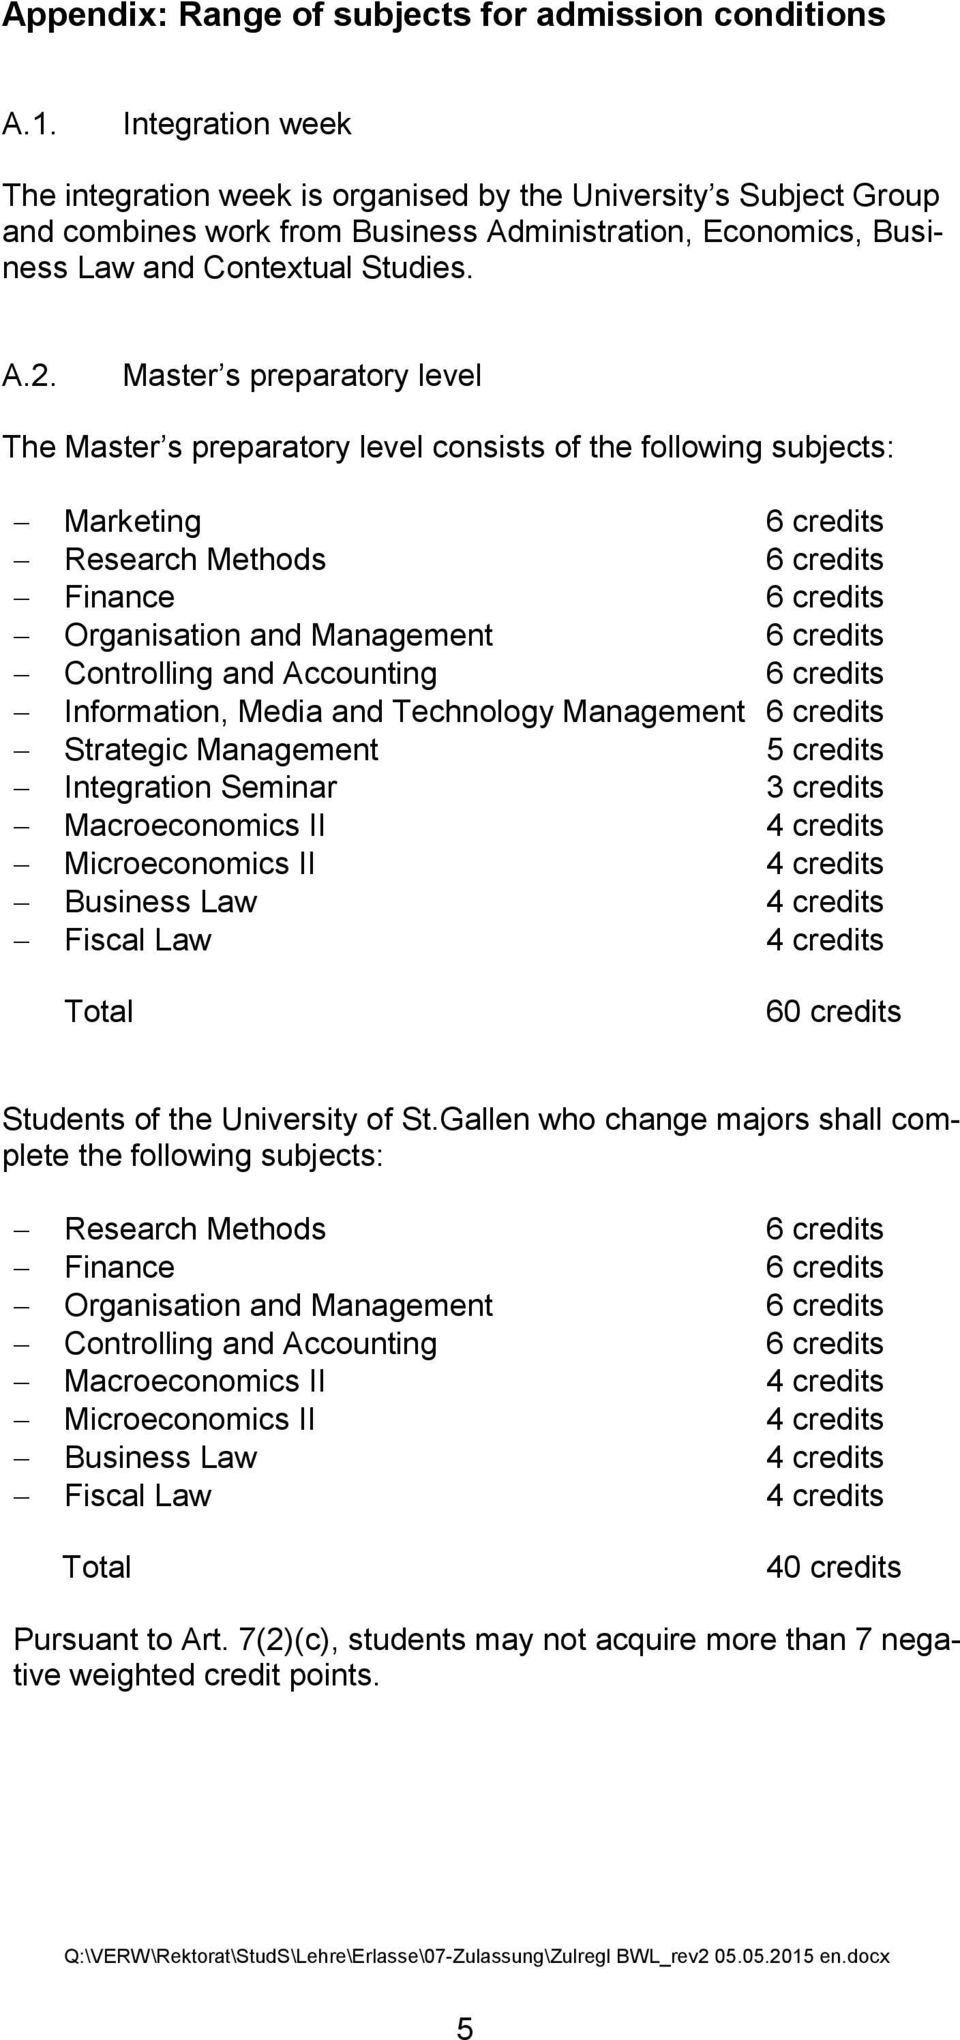 Master s preparatory level The Master s preparatory level consists of the following subjects: Marketing 6 credits Research Methods 6 credits Finance 6 credits Organisation and Management 6 credits